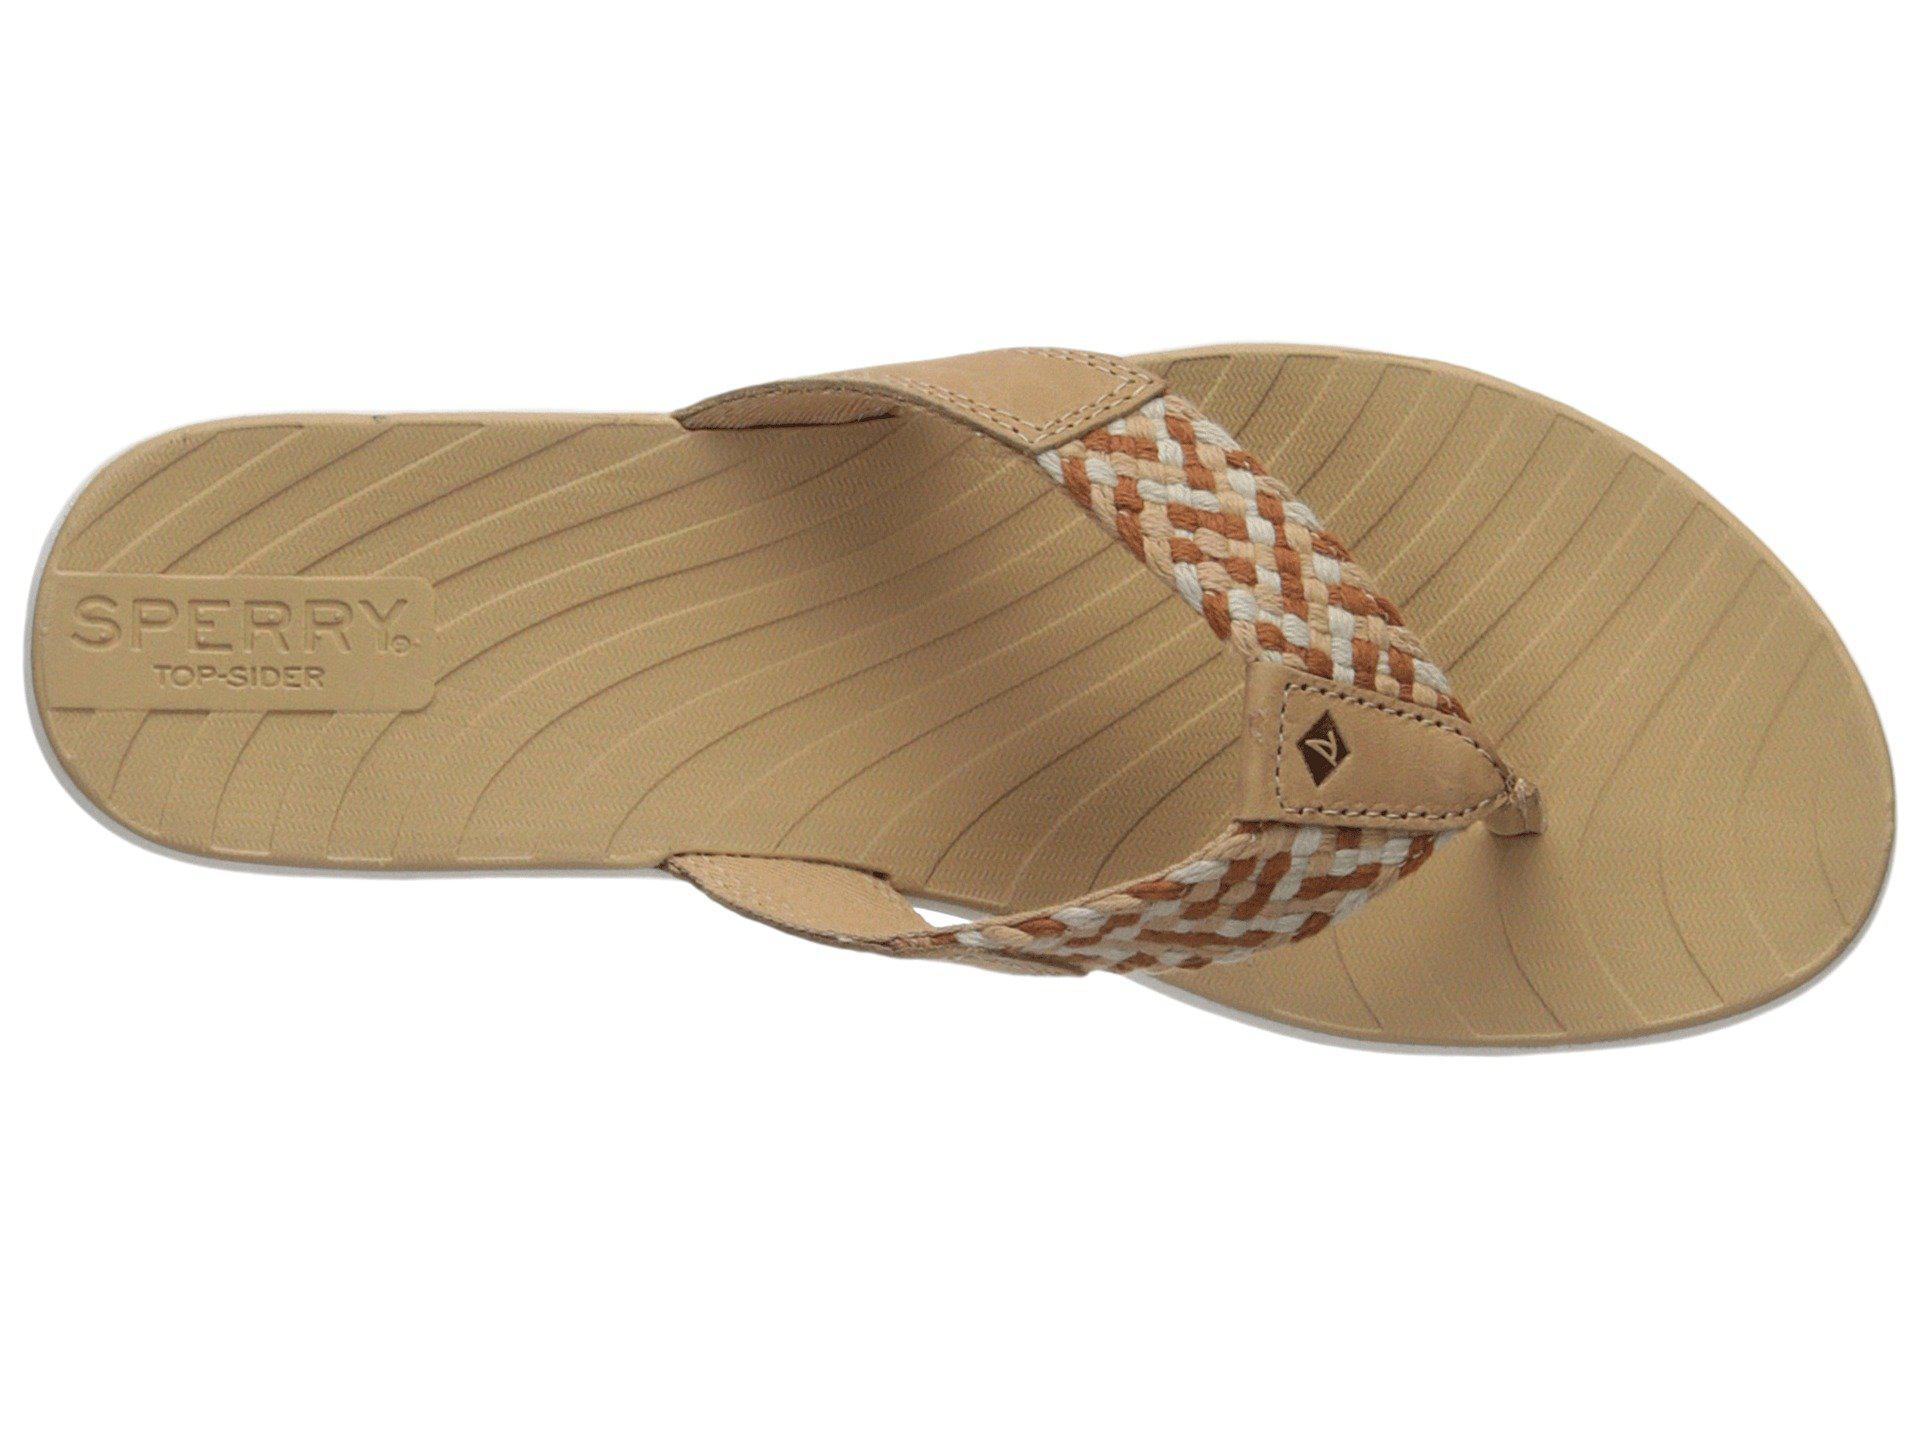 47d87244354a8 Sperry Top-Sider - Multicolor Seabrook Swell (navy) Women s Shoes - Lyst.  View fullscreen